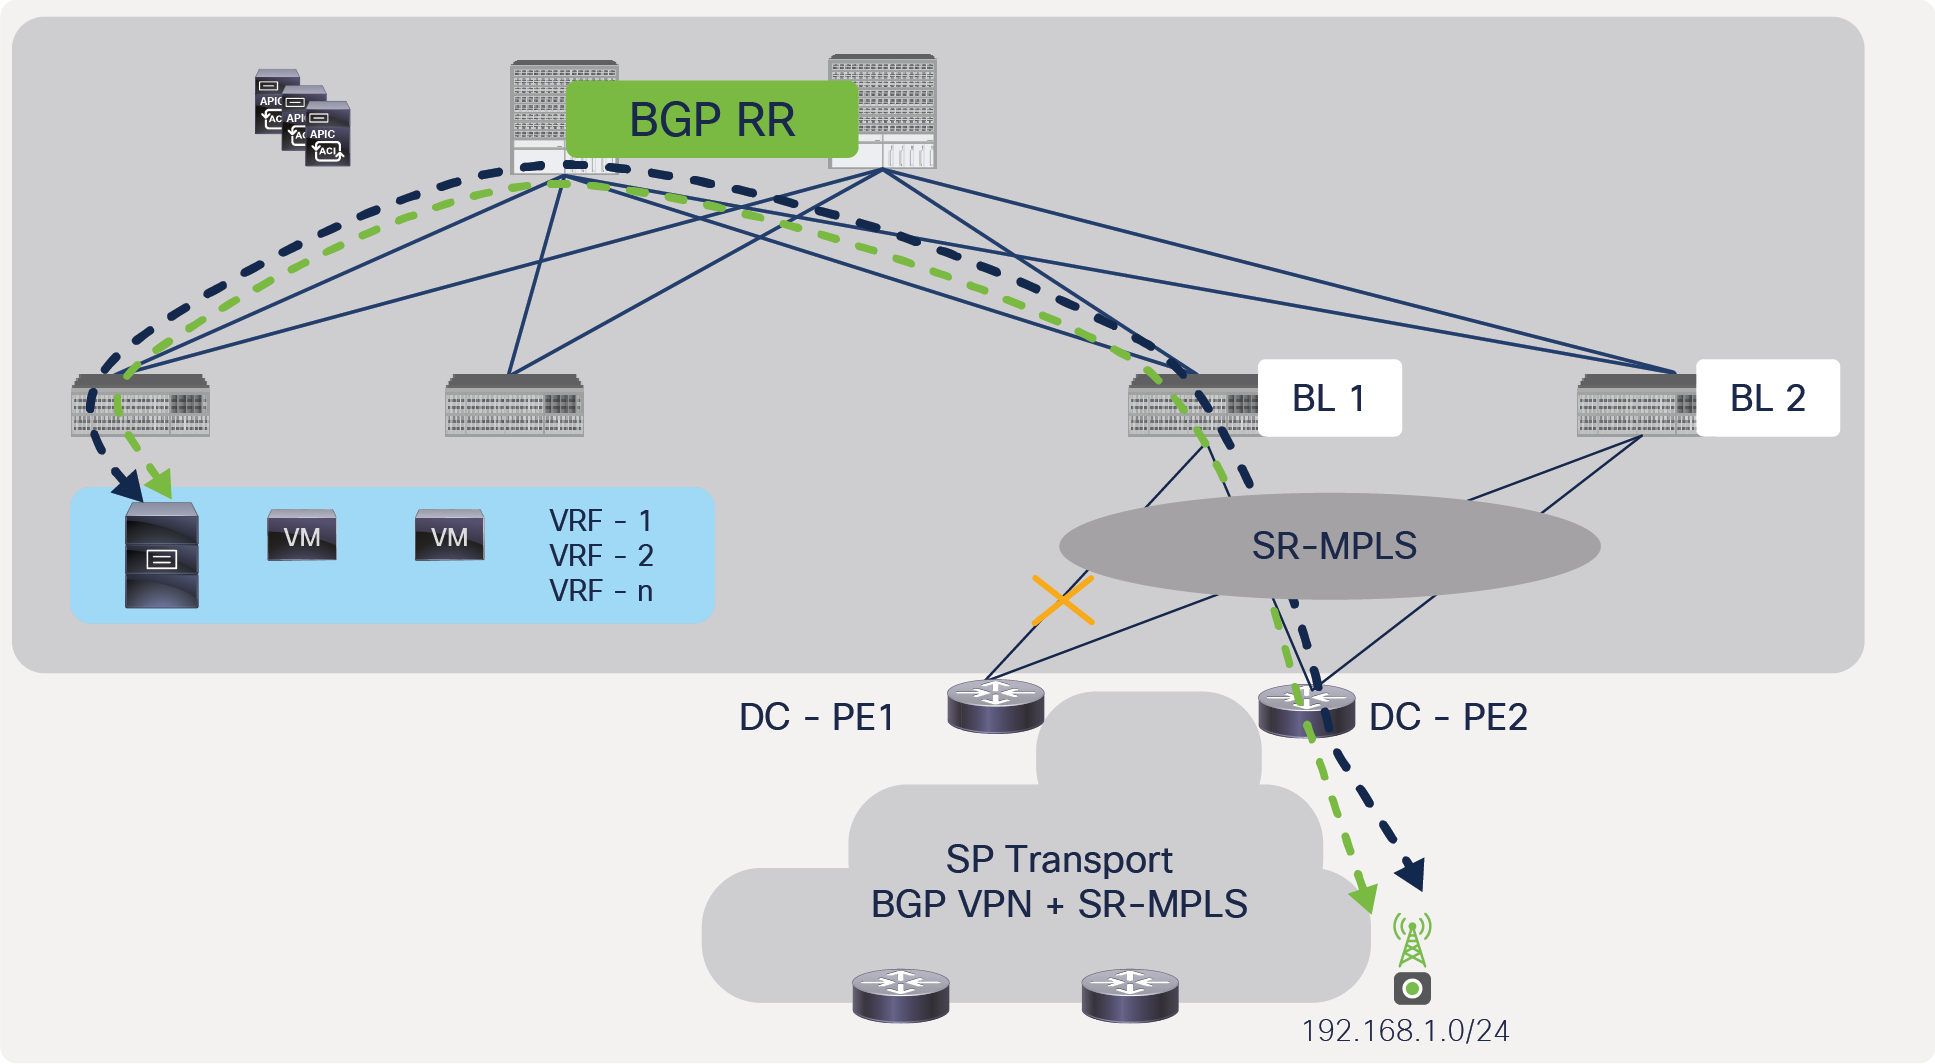 Traffic convergence due to failure of link between ACI border leaf and DC-PE, with full redundancy